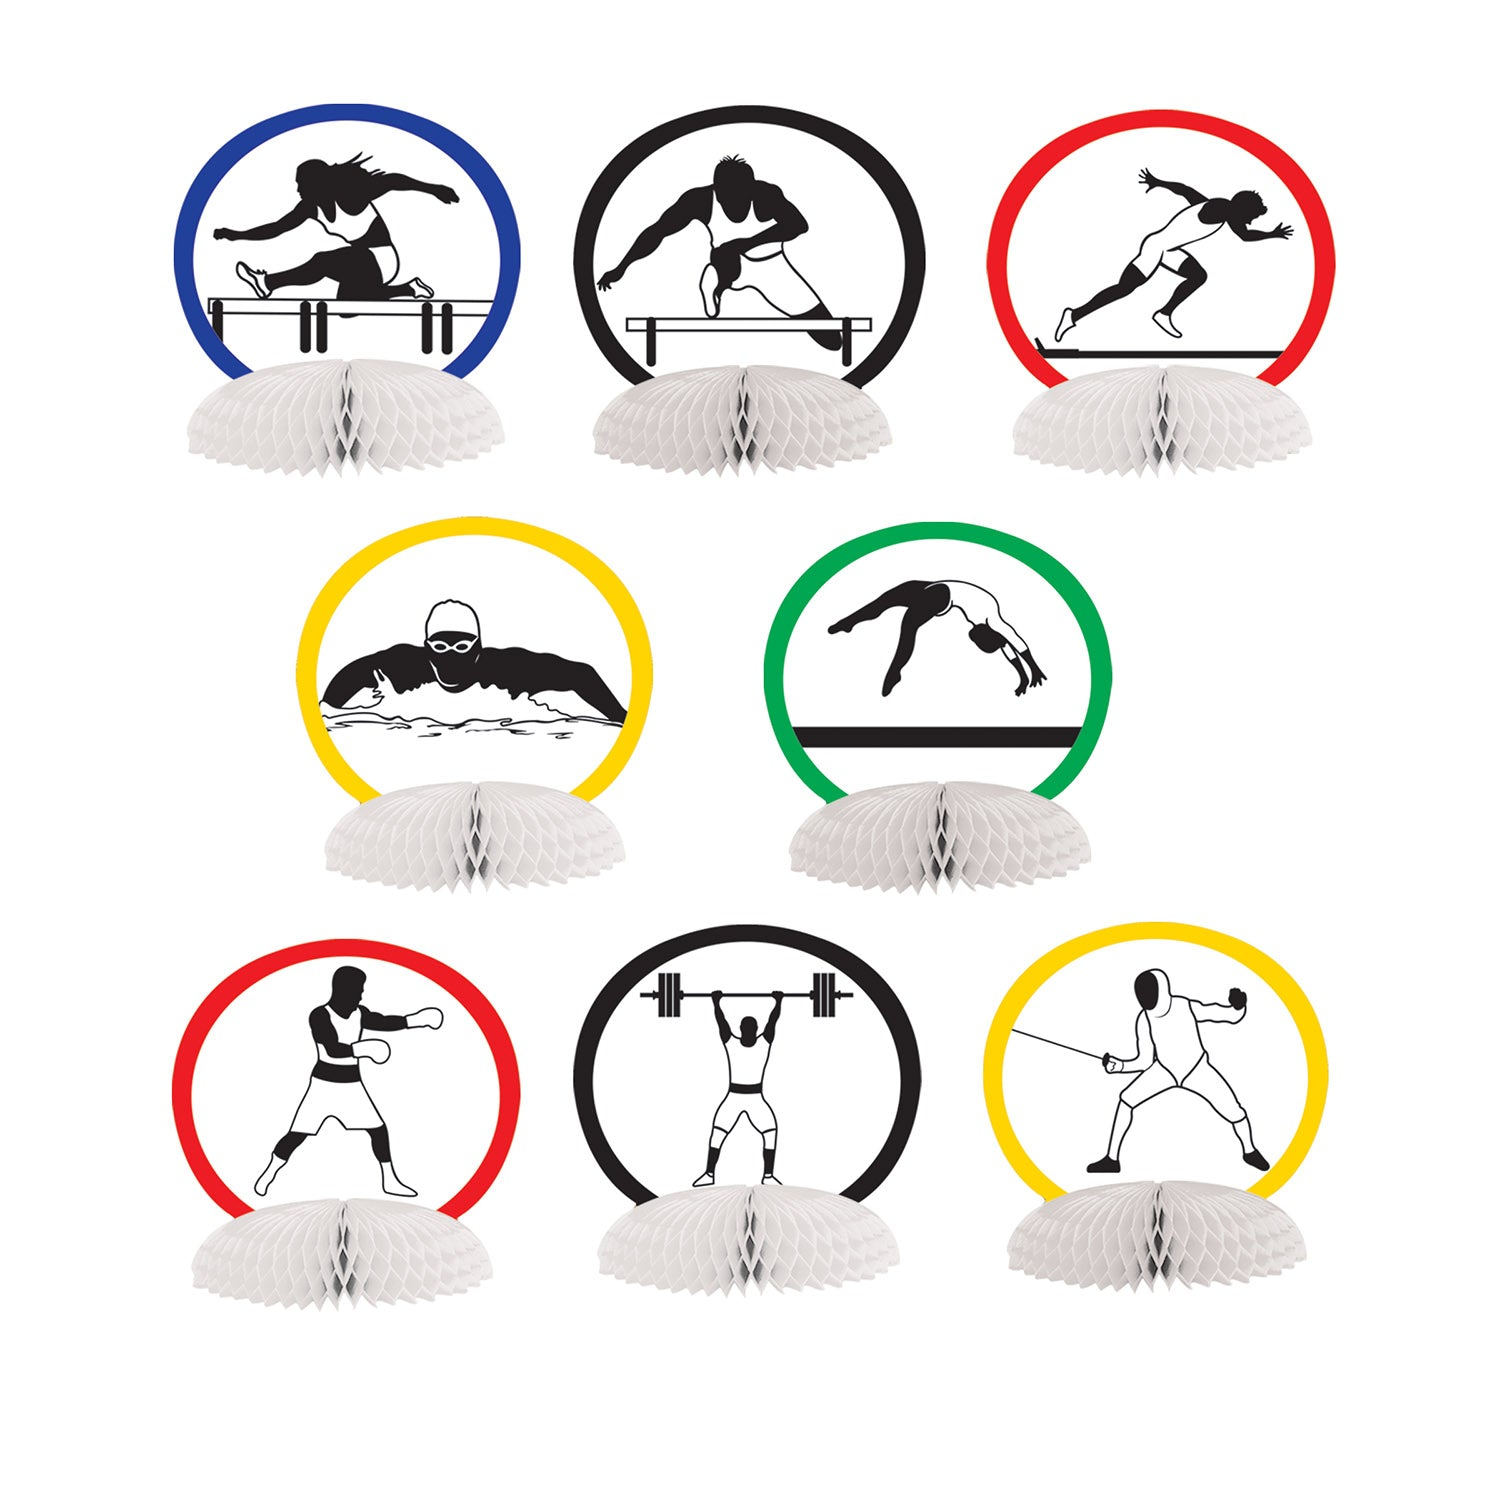 Summer Sports Mini Centerpieces (8/Pkg) by Beistle - Sports Theme Decorations